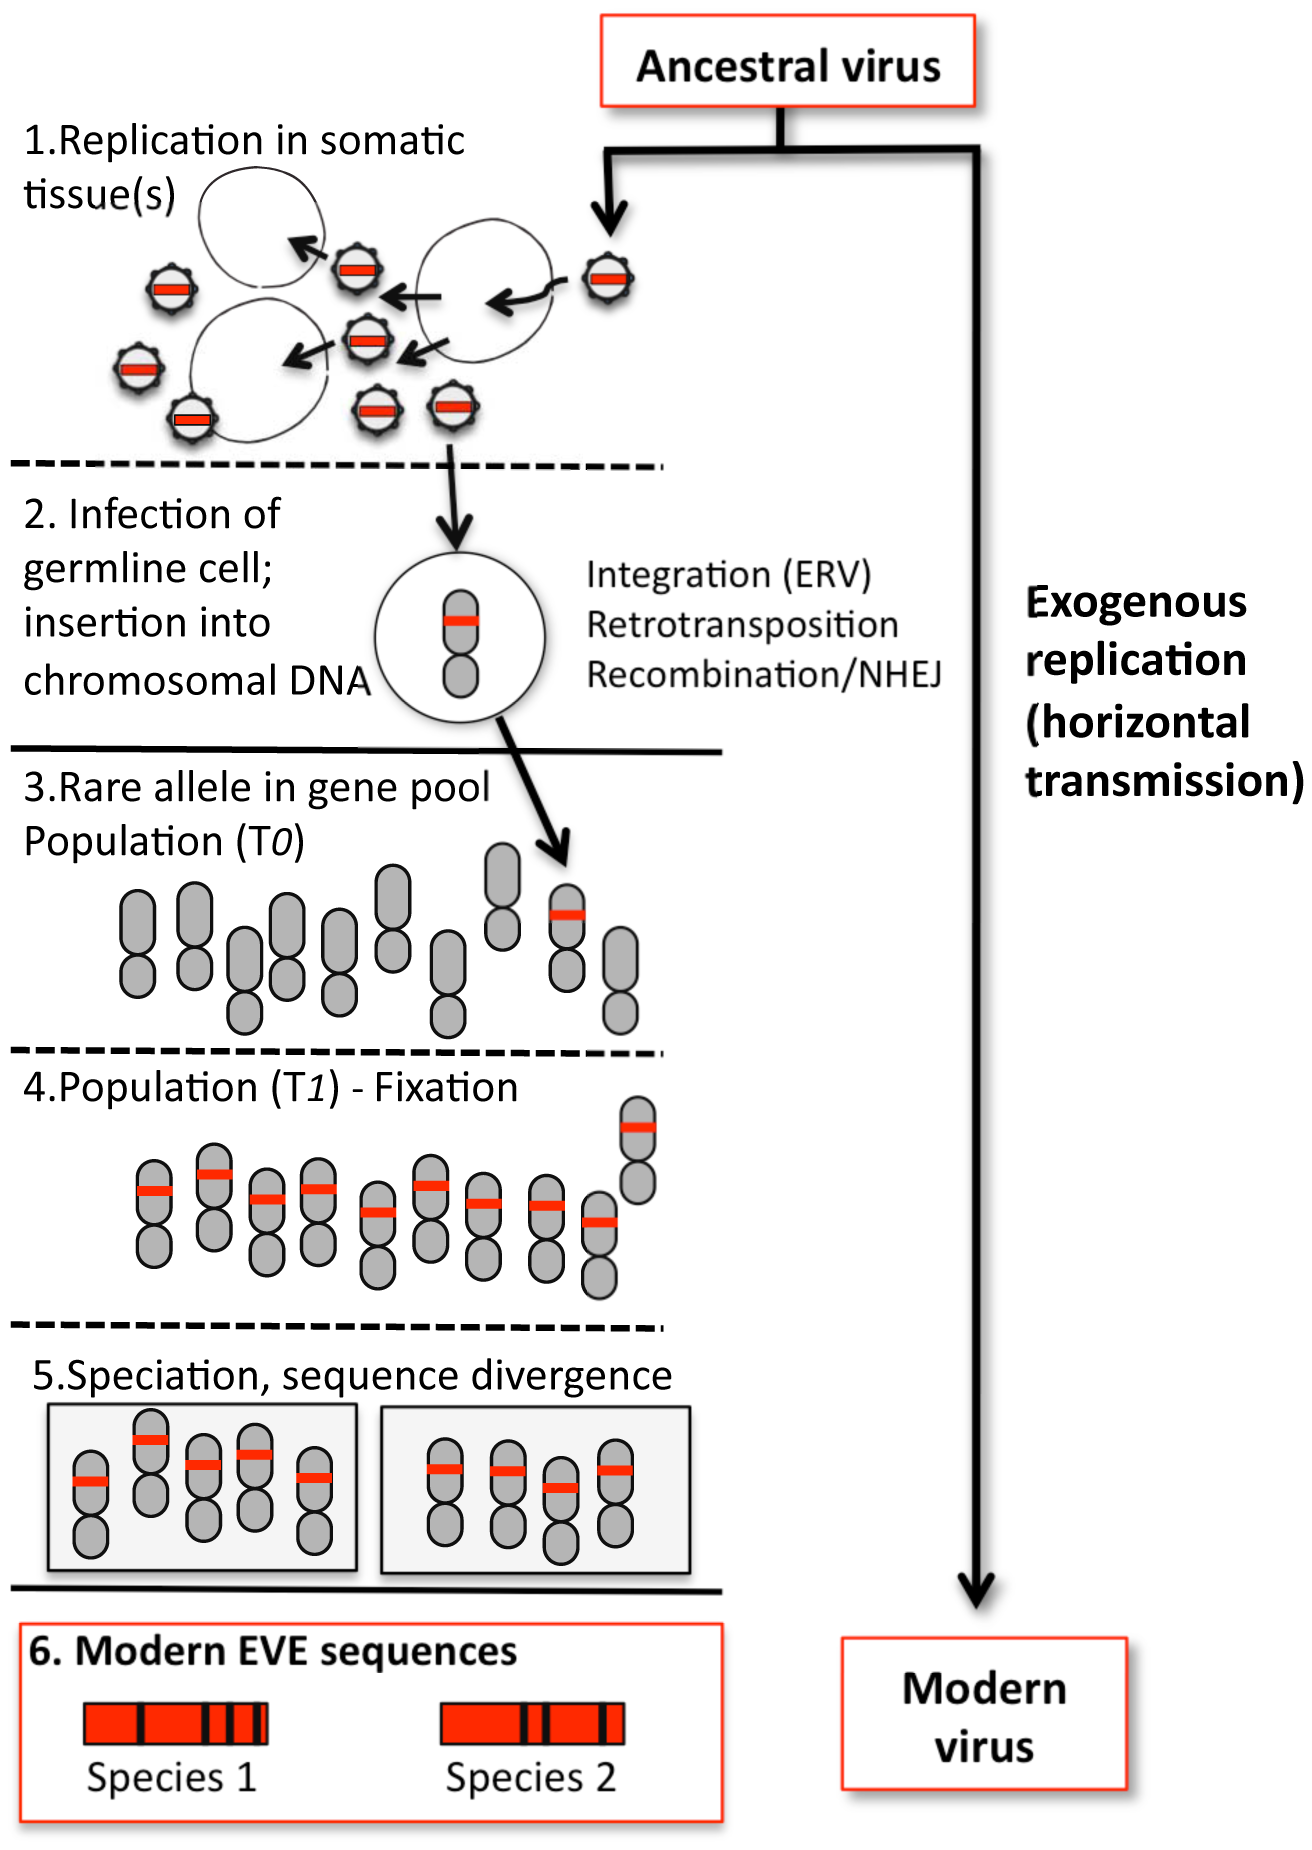 Formation of a hypothetical EVE and relationship to modern viruses.